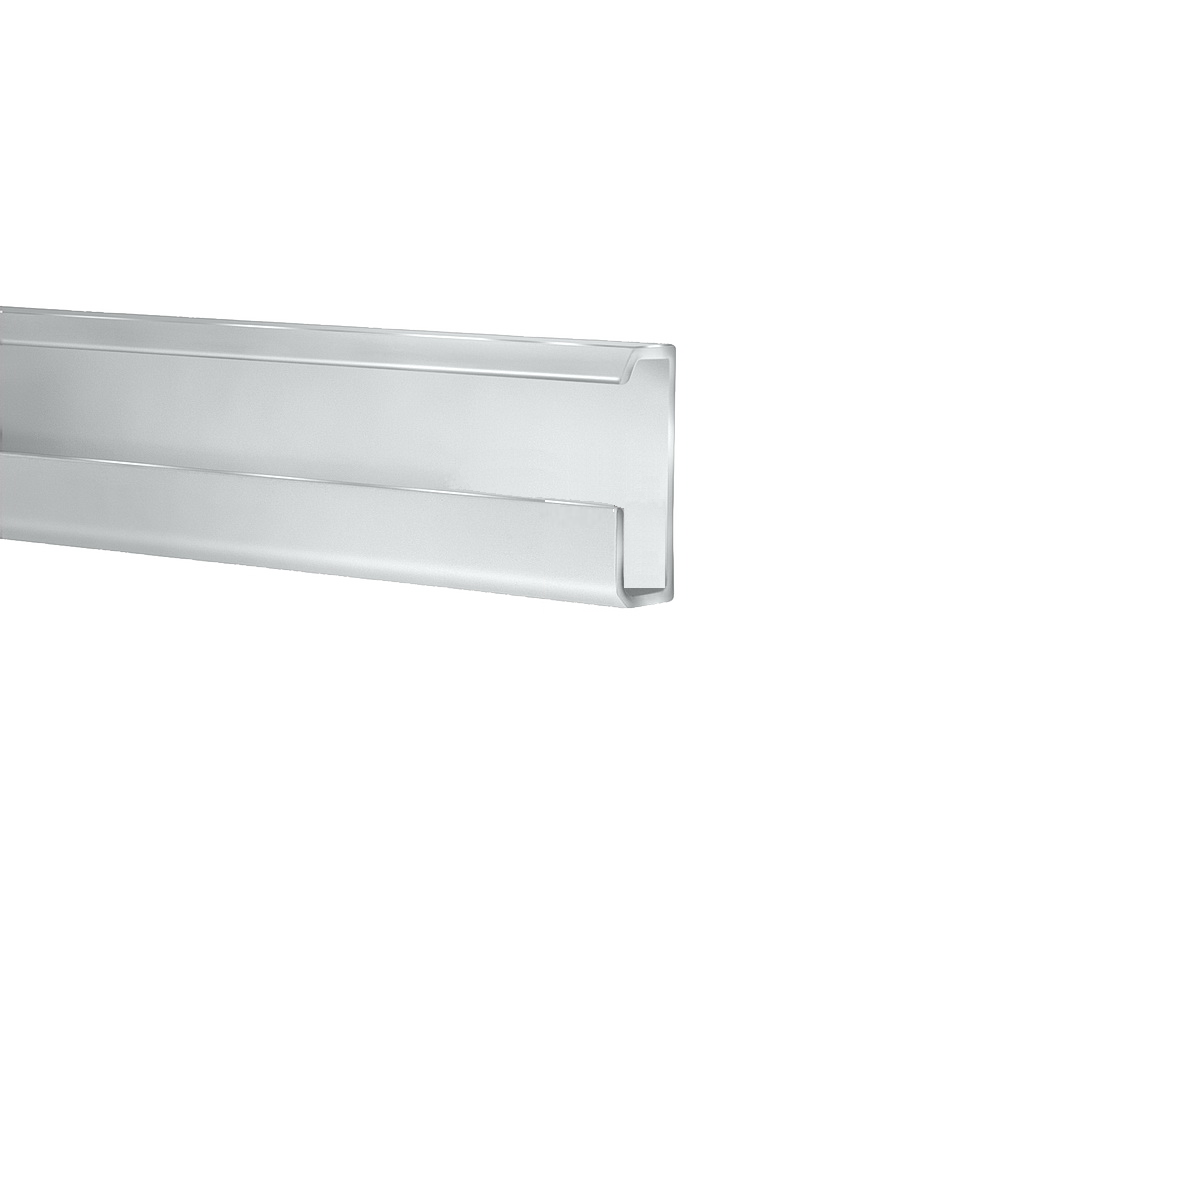 Classic Rail System, Clear Anodized Finish